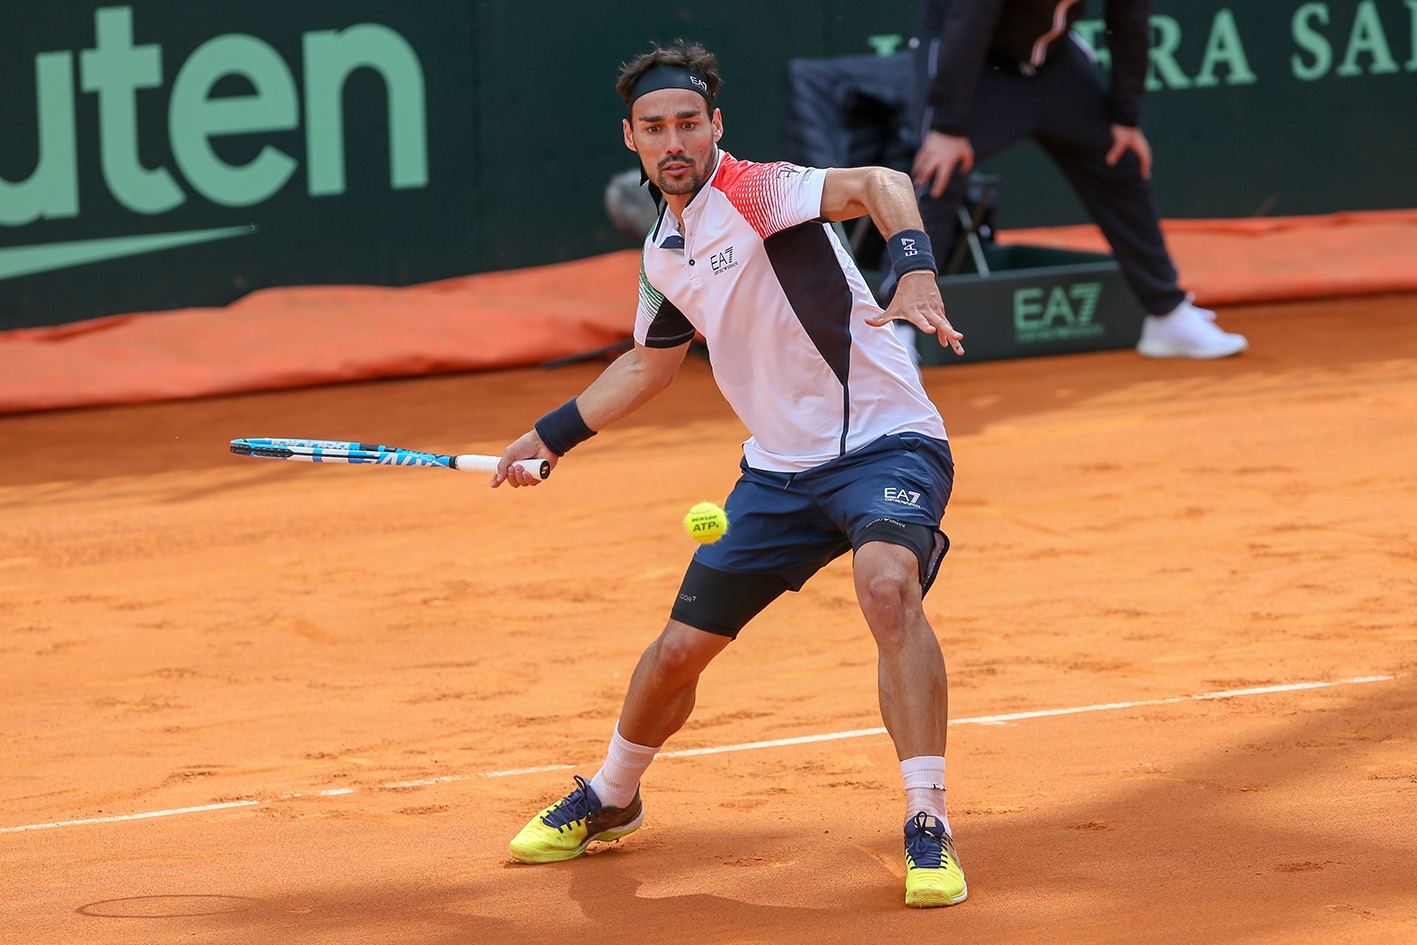 ea7-emporio-armani-designs-the-outfits-for-the-match-between-italy-and-south-korea-at-the-davis-cup_fabio-fognini-2